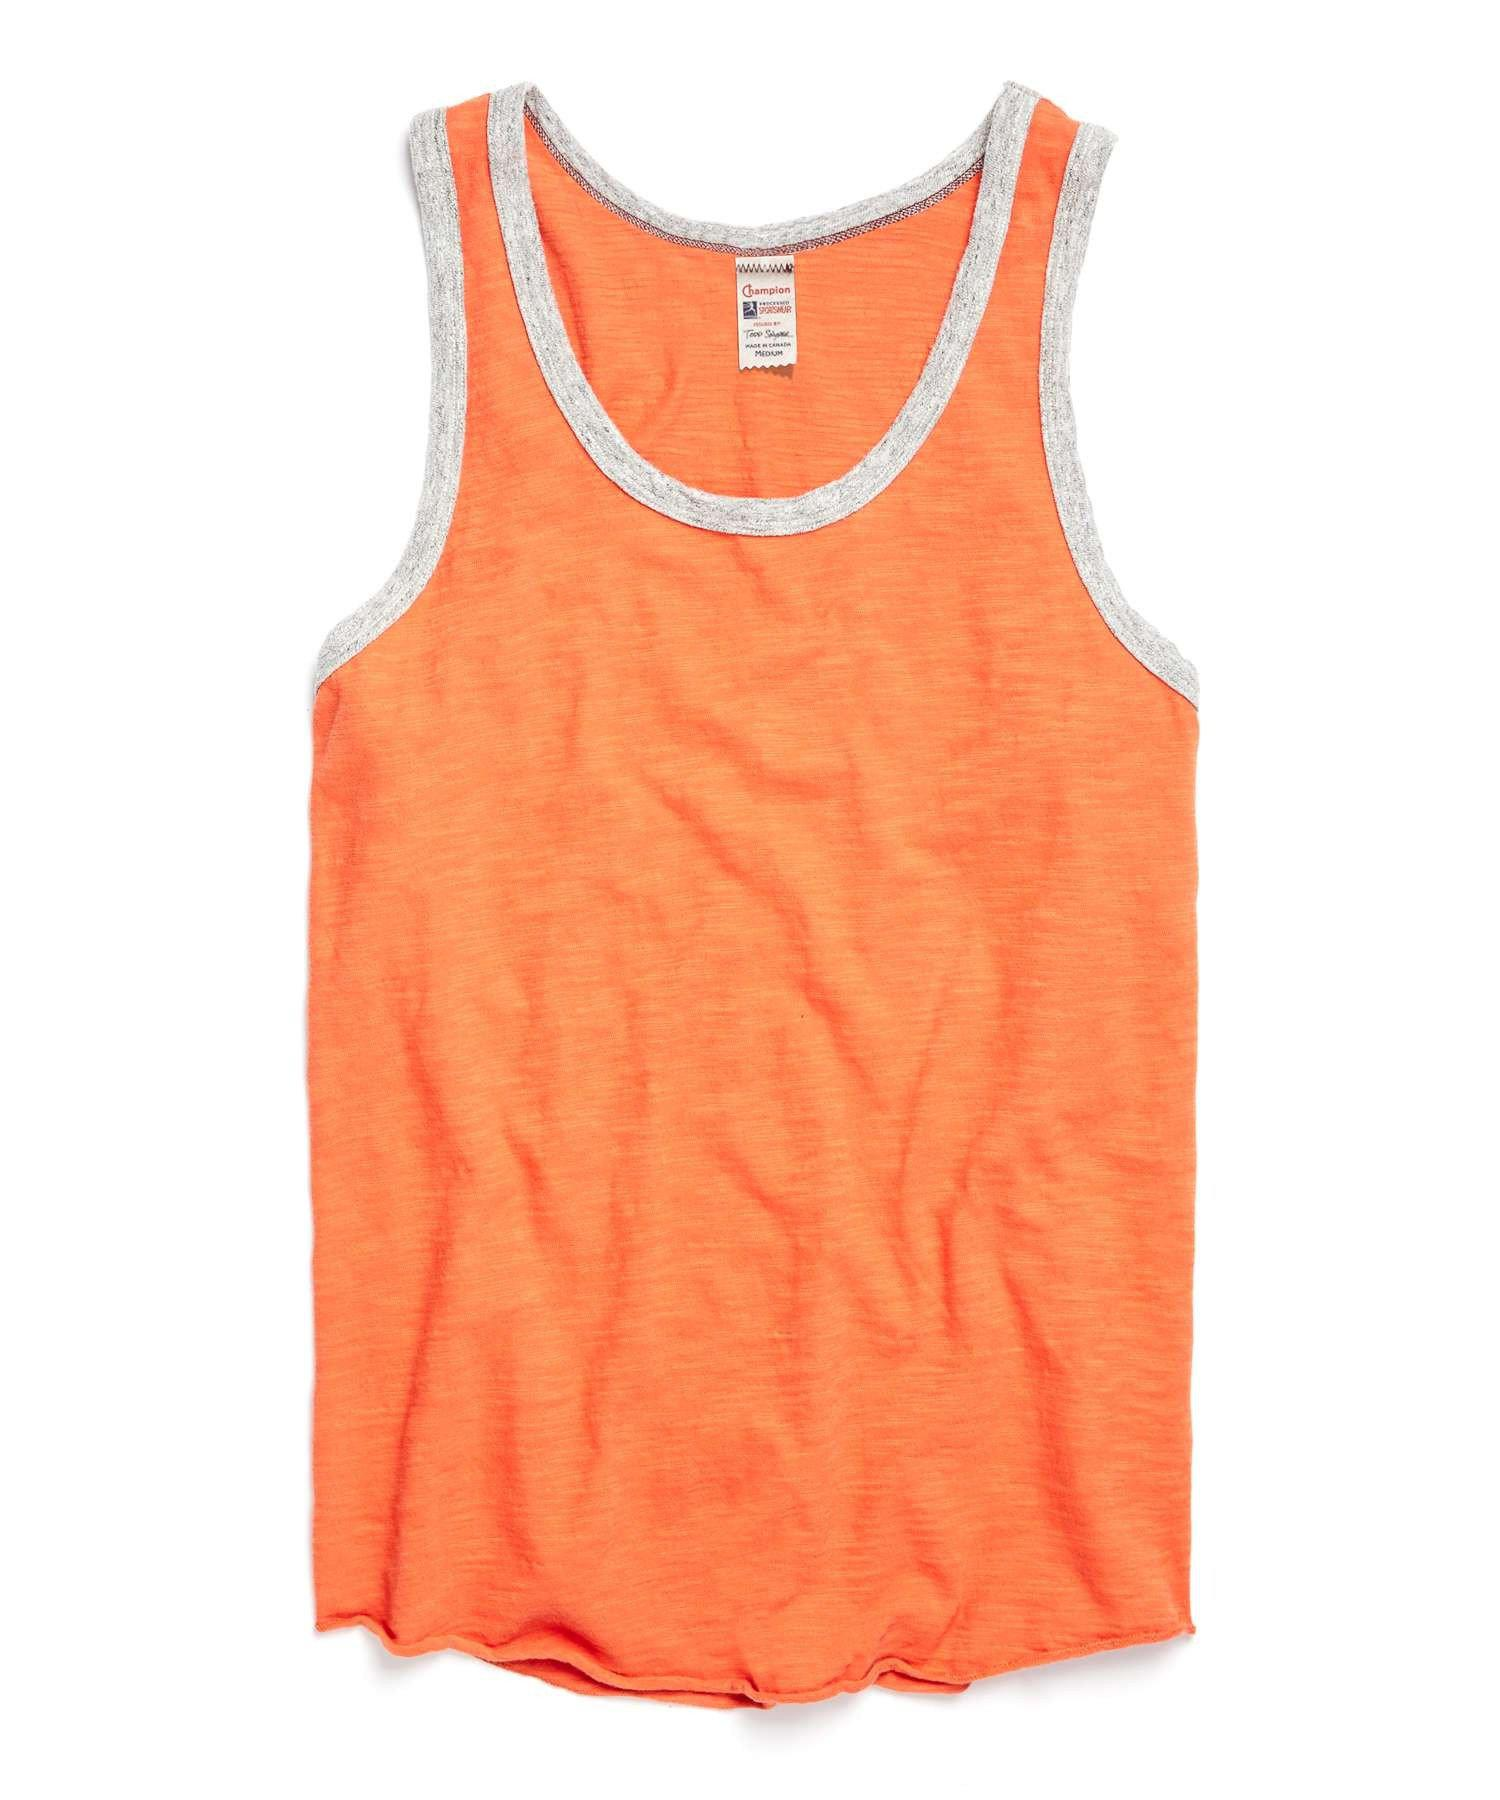 6bb20402f3dad Lyst - Todd Snyder Solid Ringer Tank Top In Rusty Orange in Gray for Men